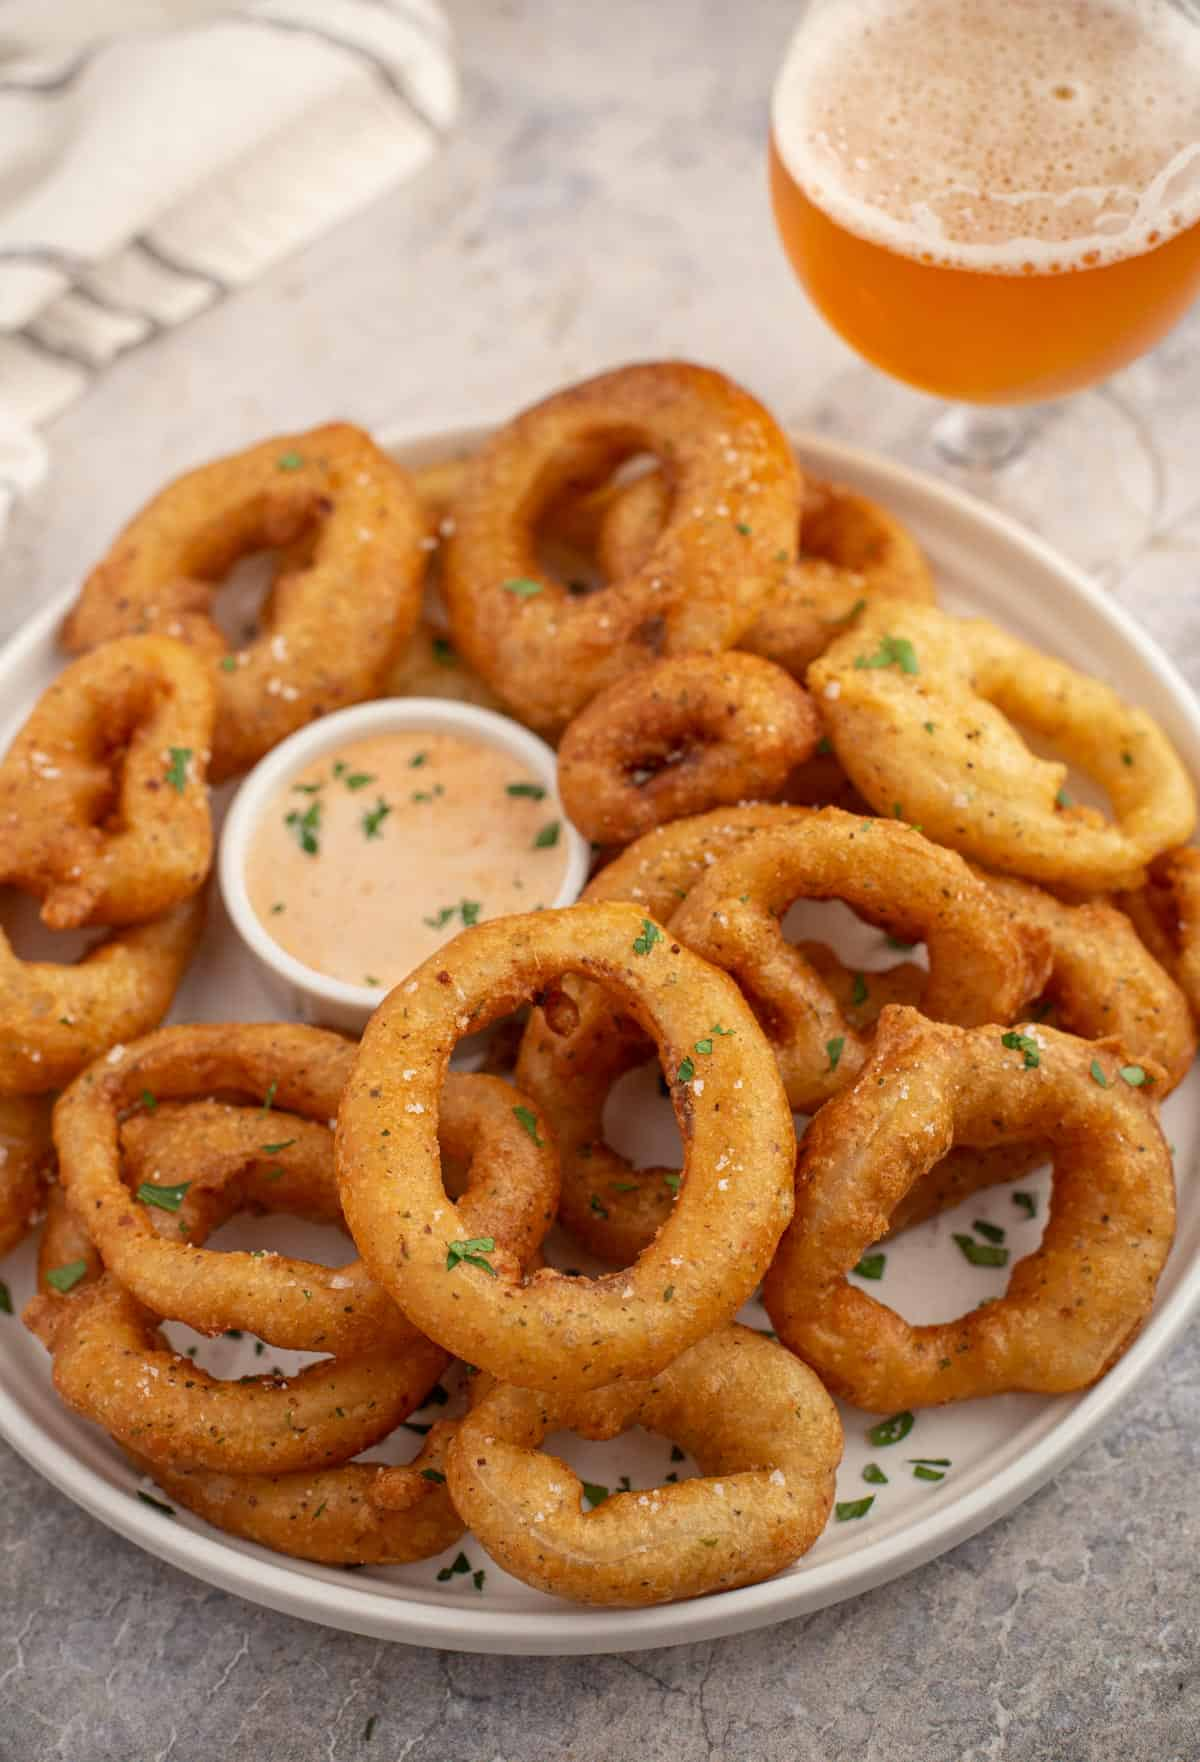 A platter of smoked onion rings and a glass of beer